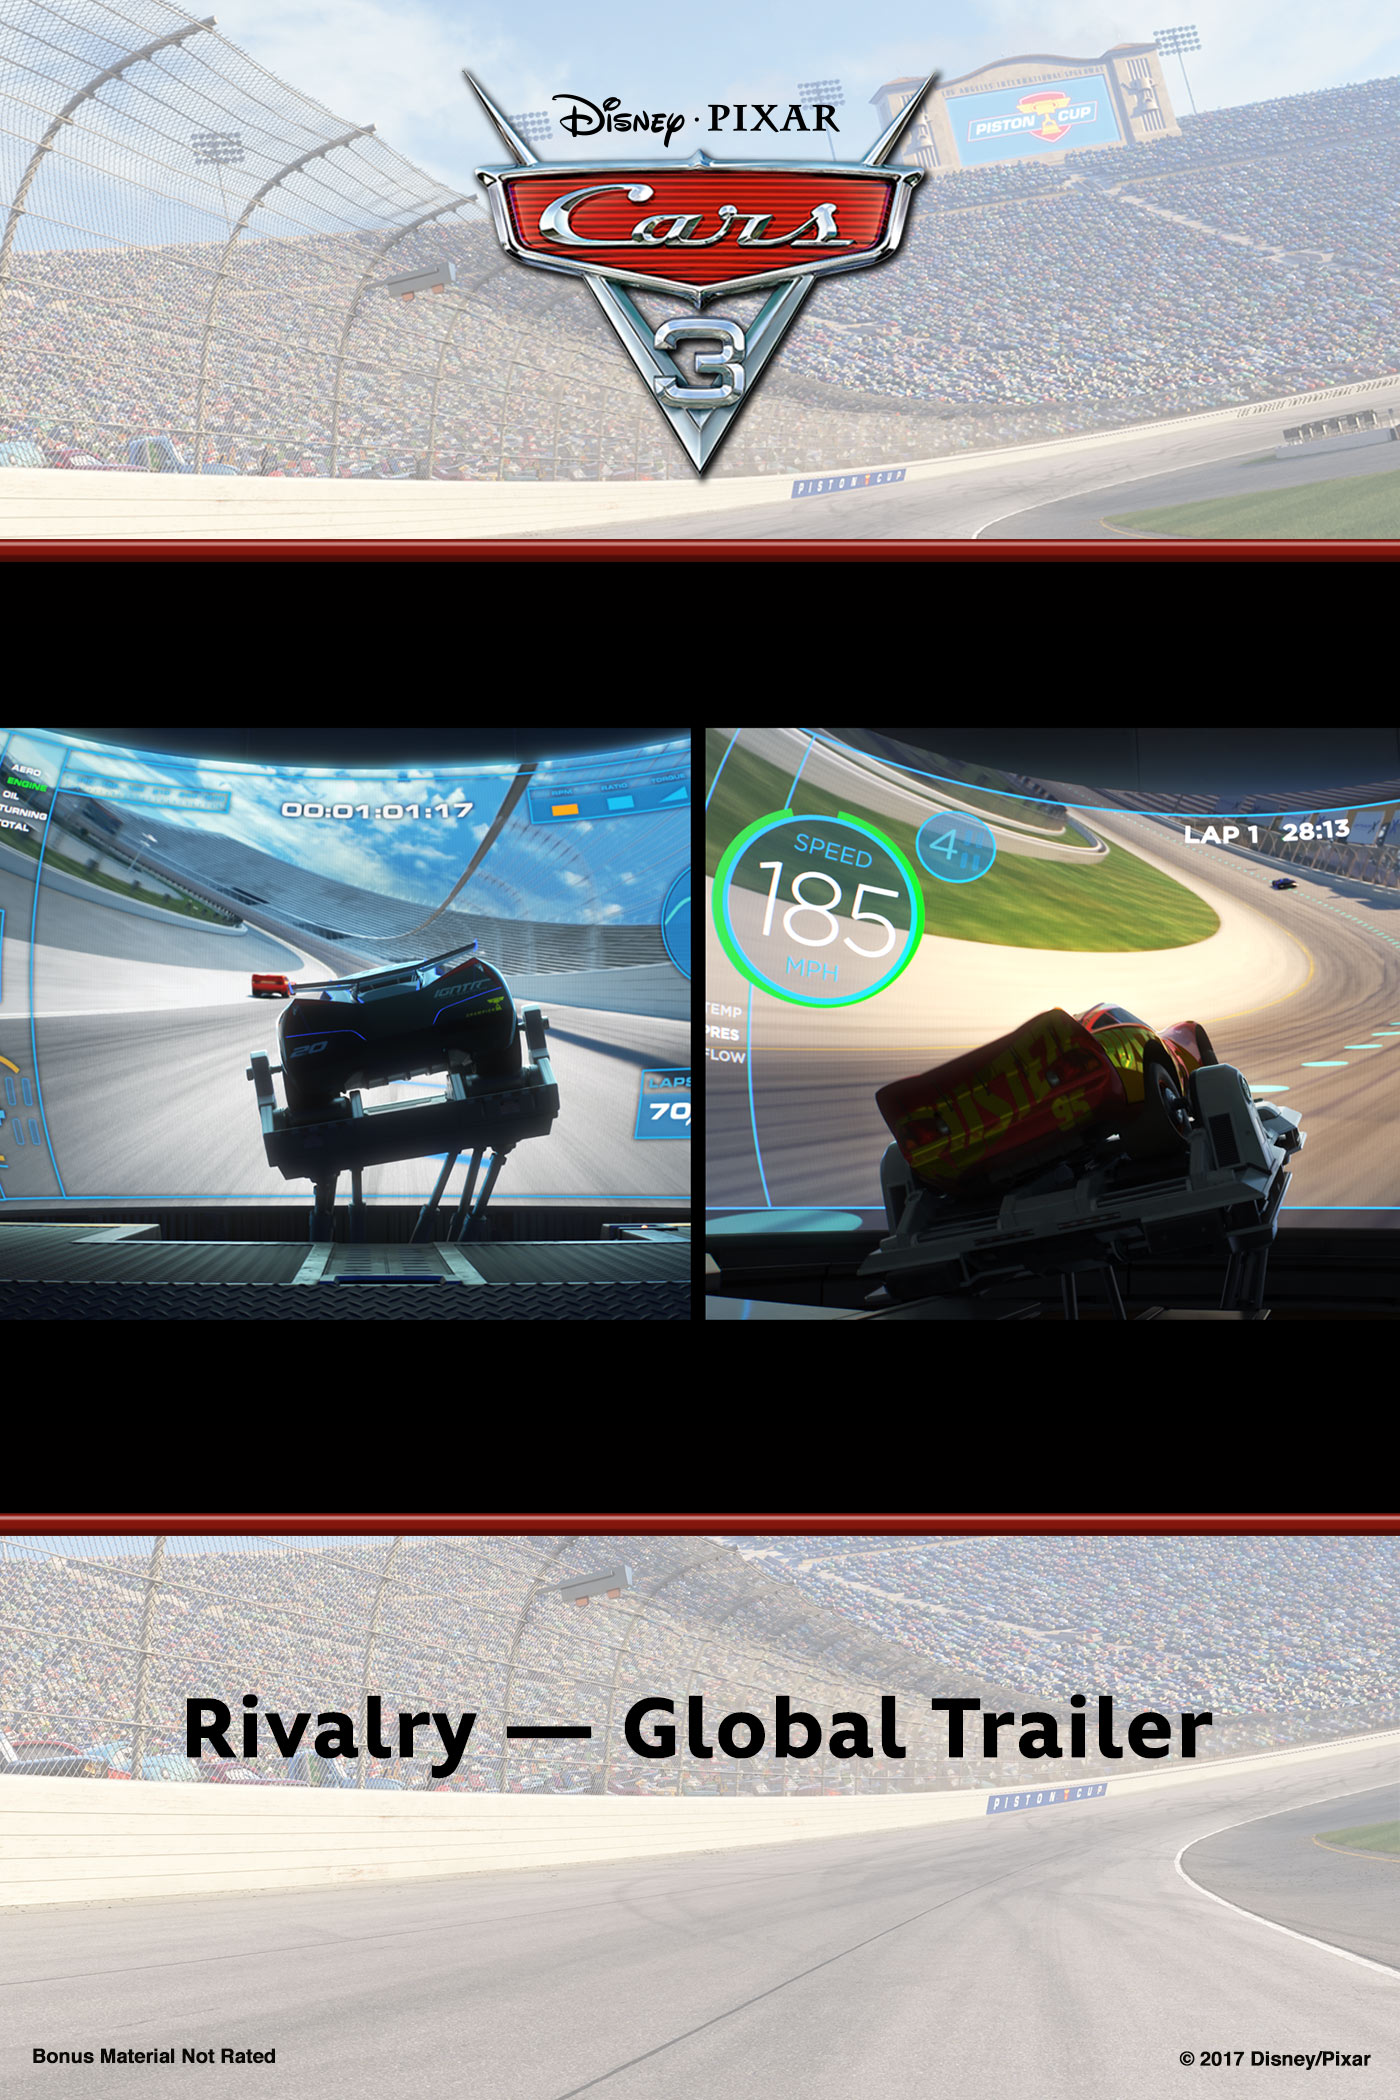 Rivalry Global Trailer